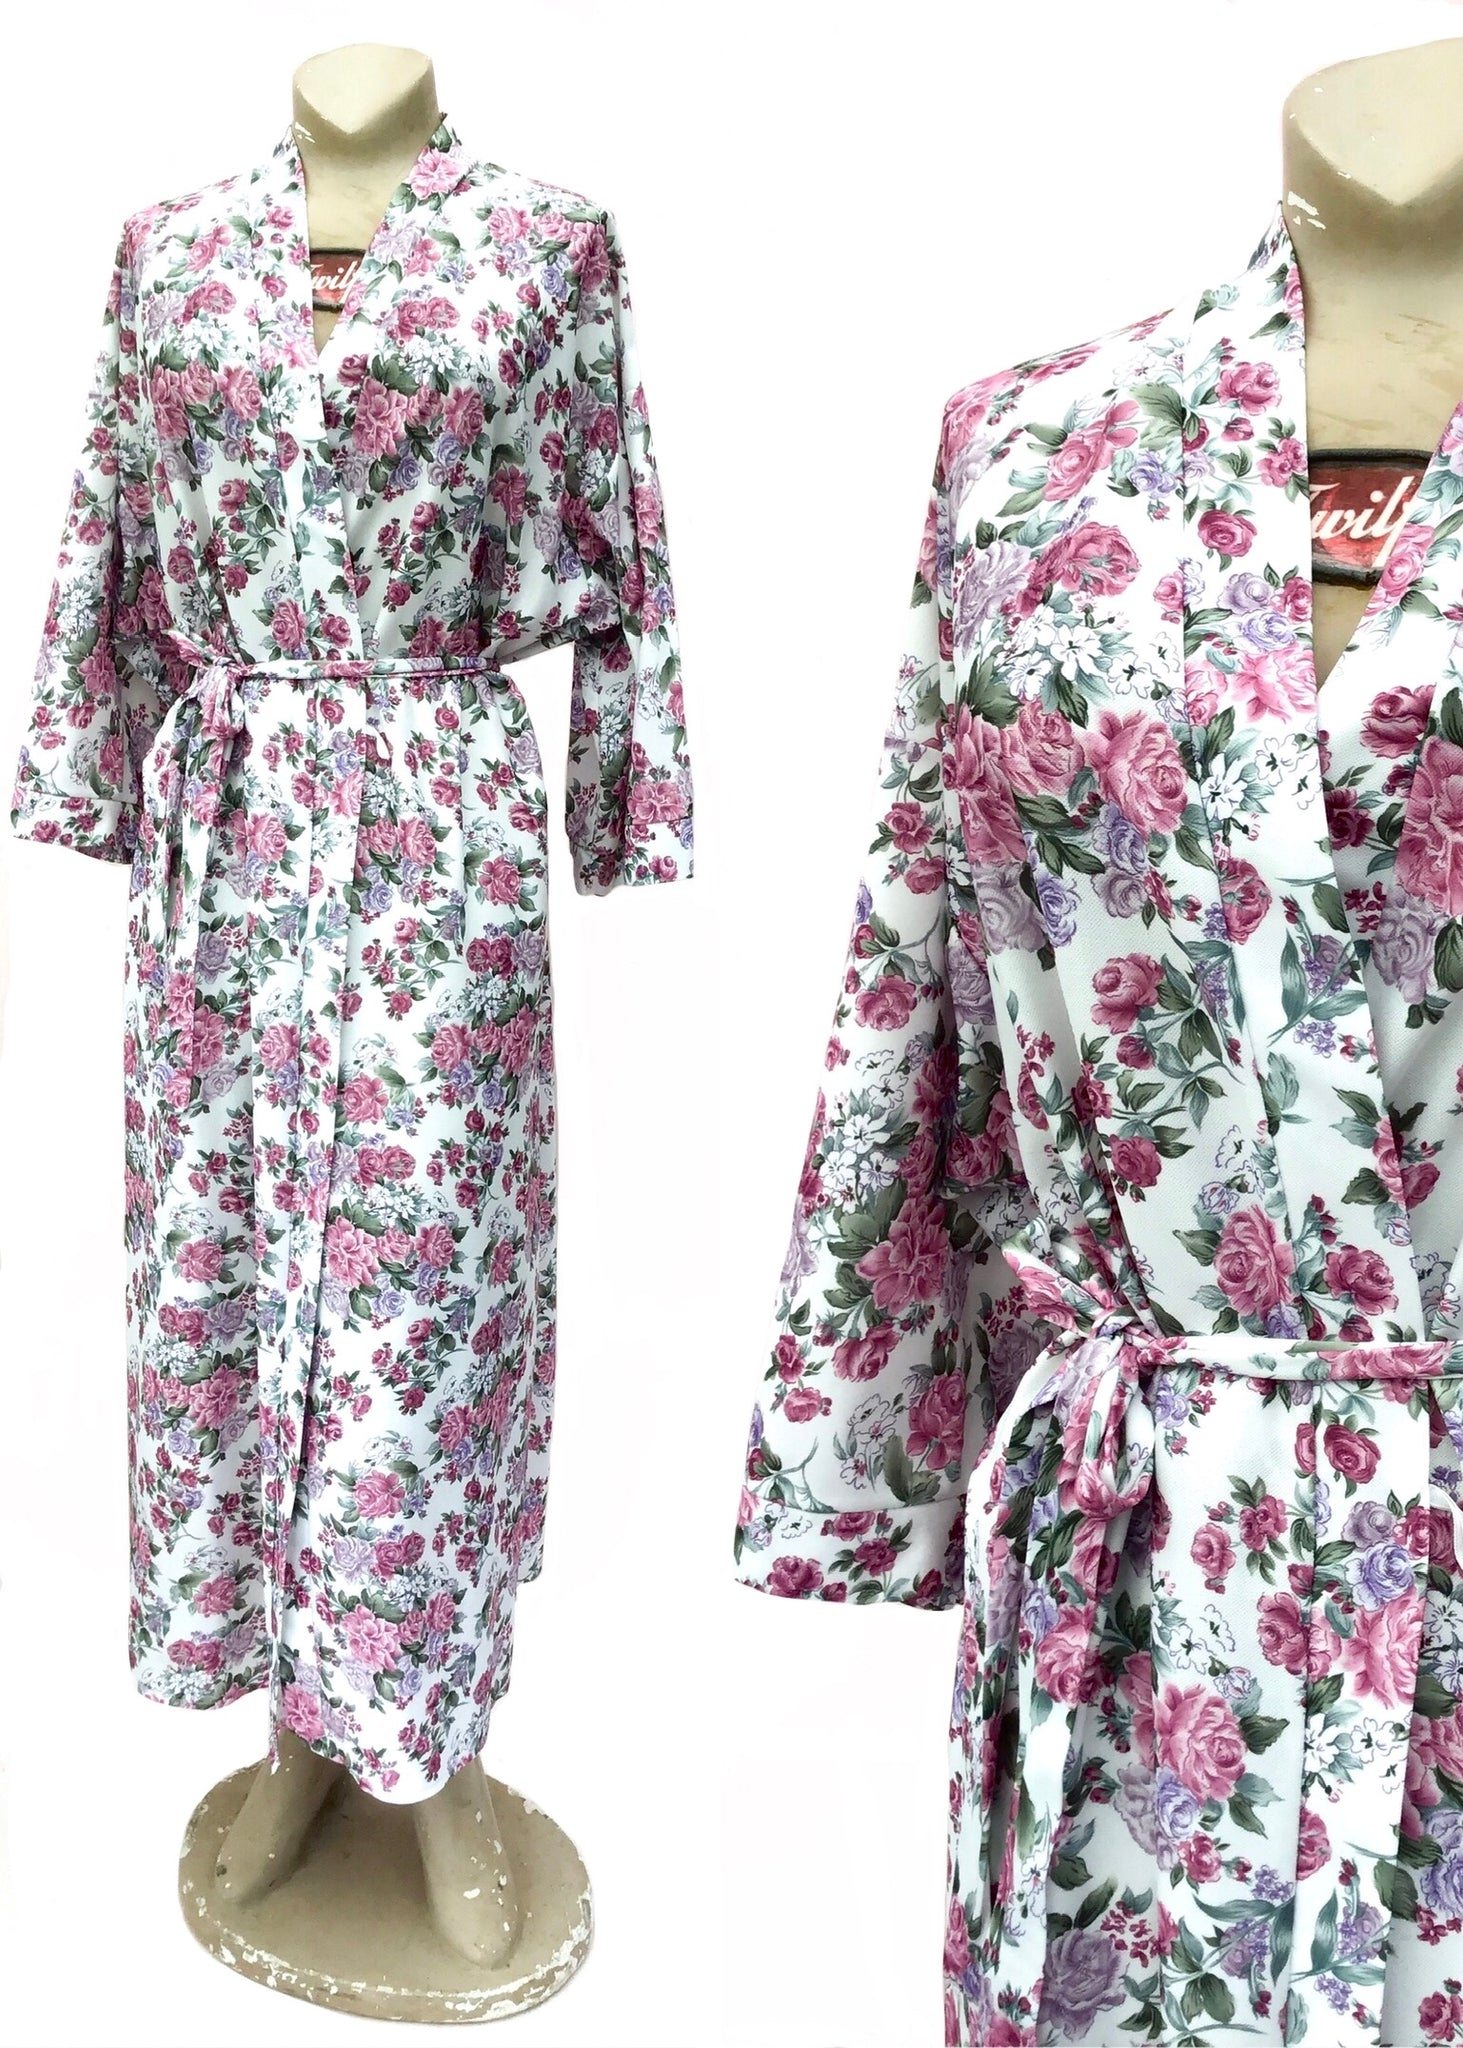 Vintage robe dressing gown, white with dusky pink and lavender flowers, large size wraparound kimono style.